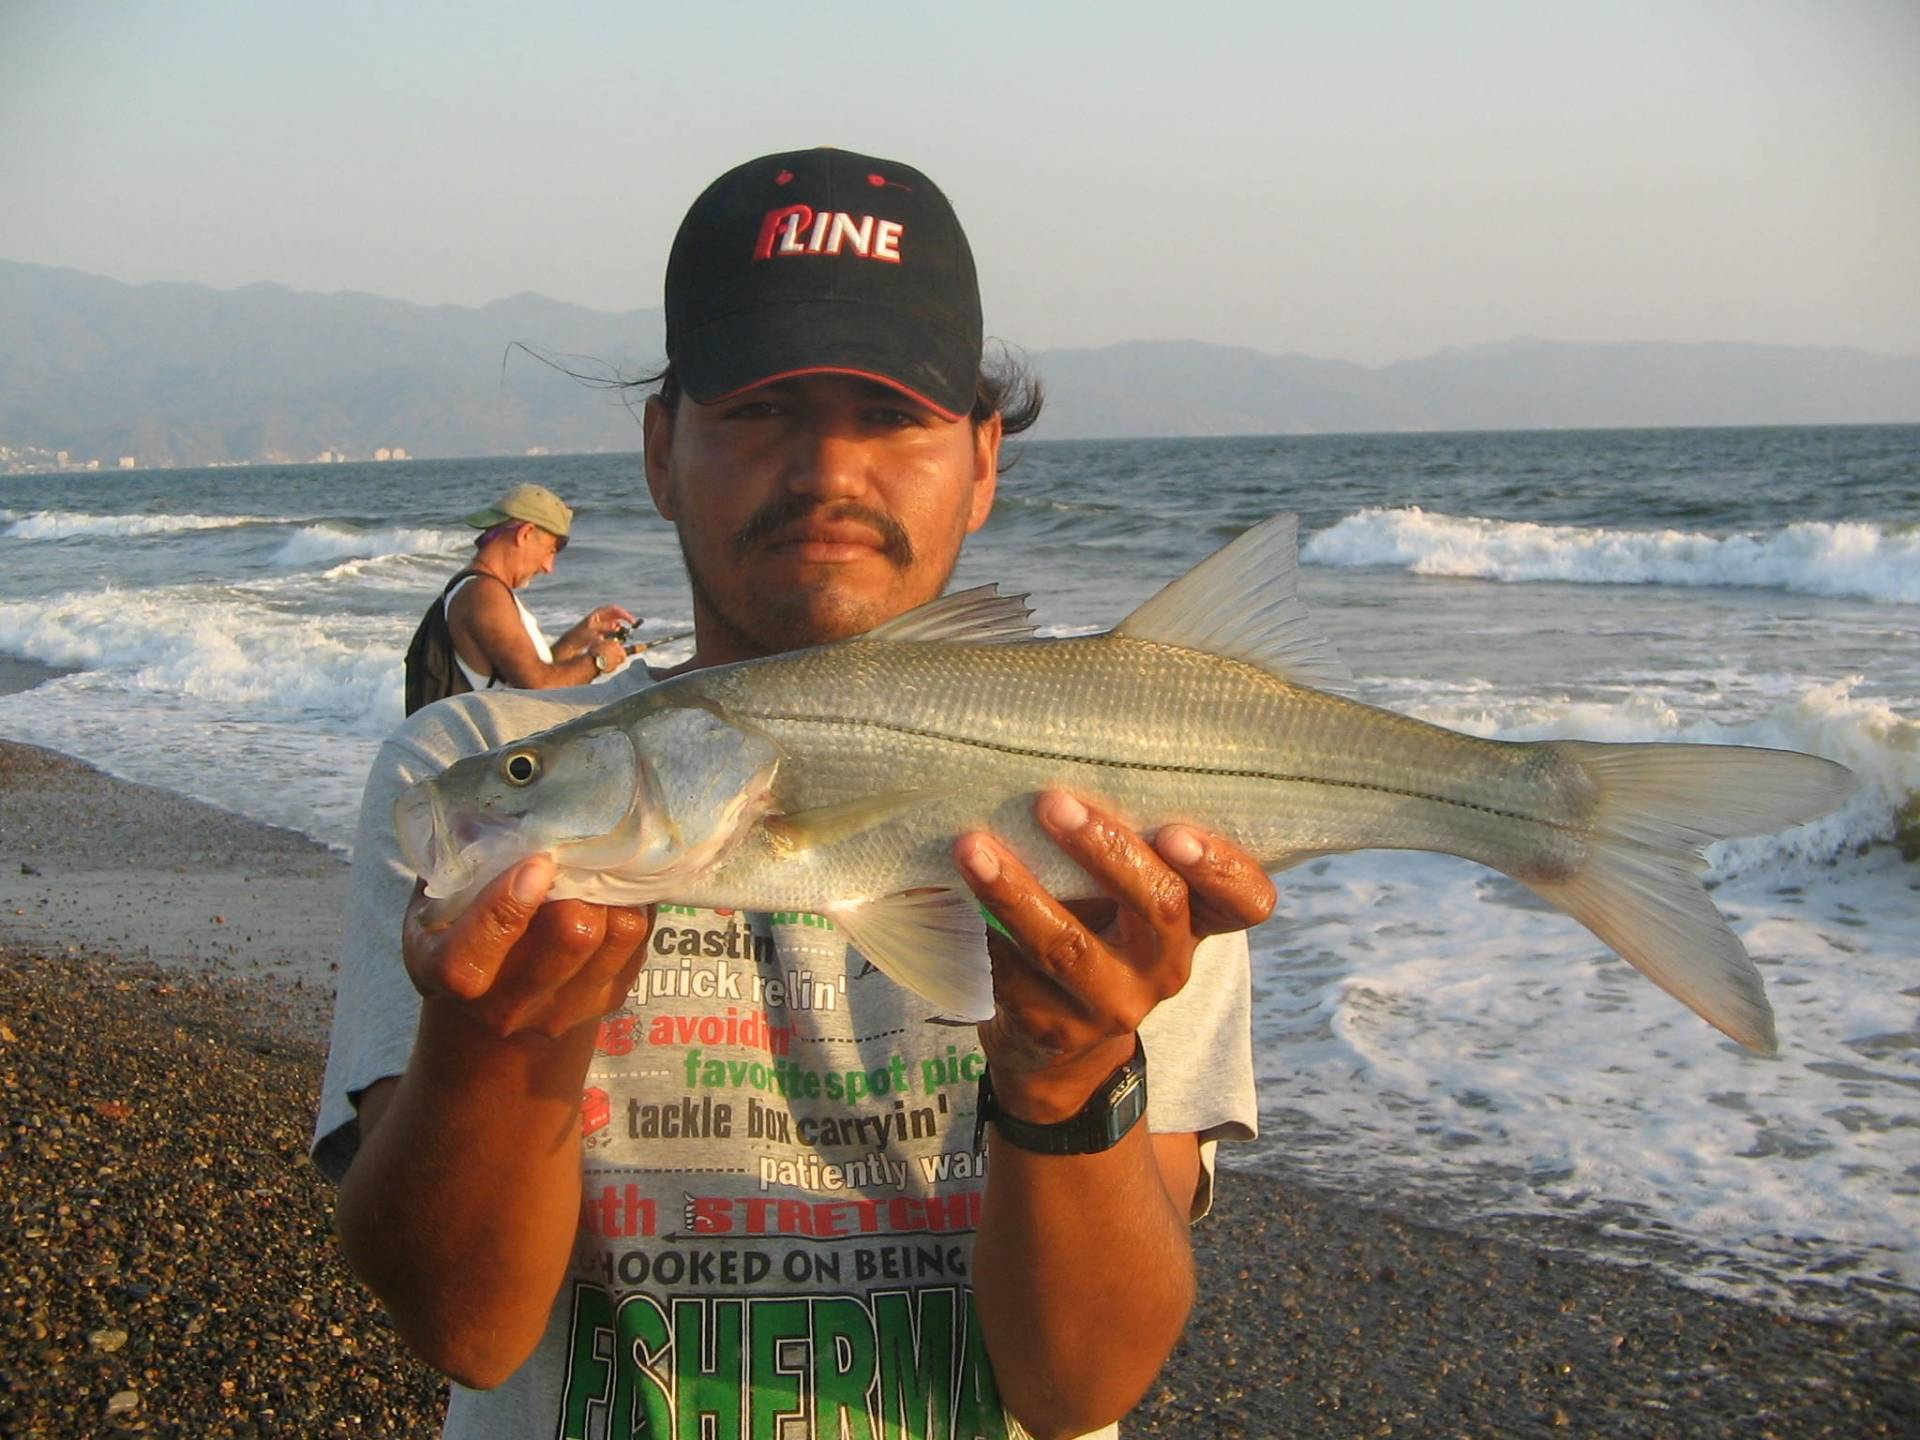 Puerto vallarta surf fishing pic bloodydecks for Fishing in puerto vallarta